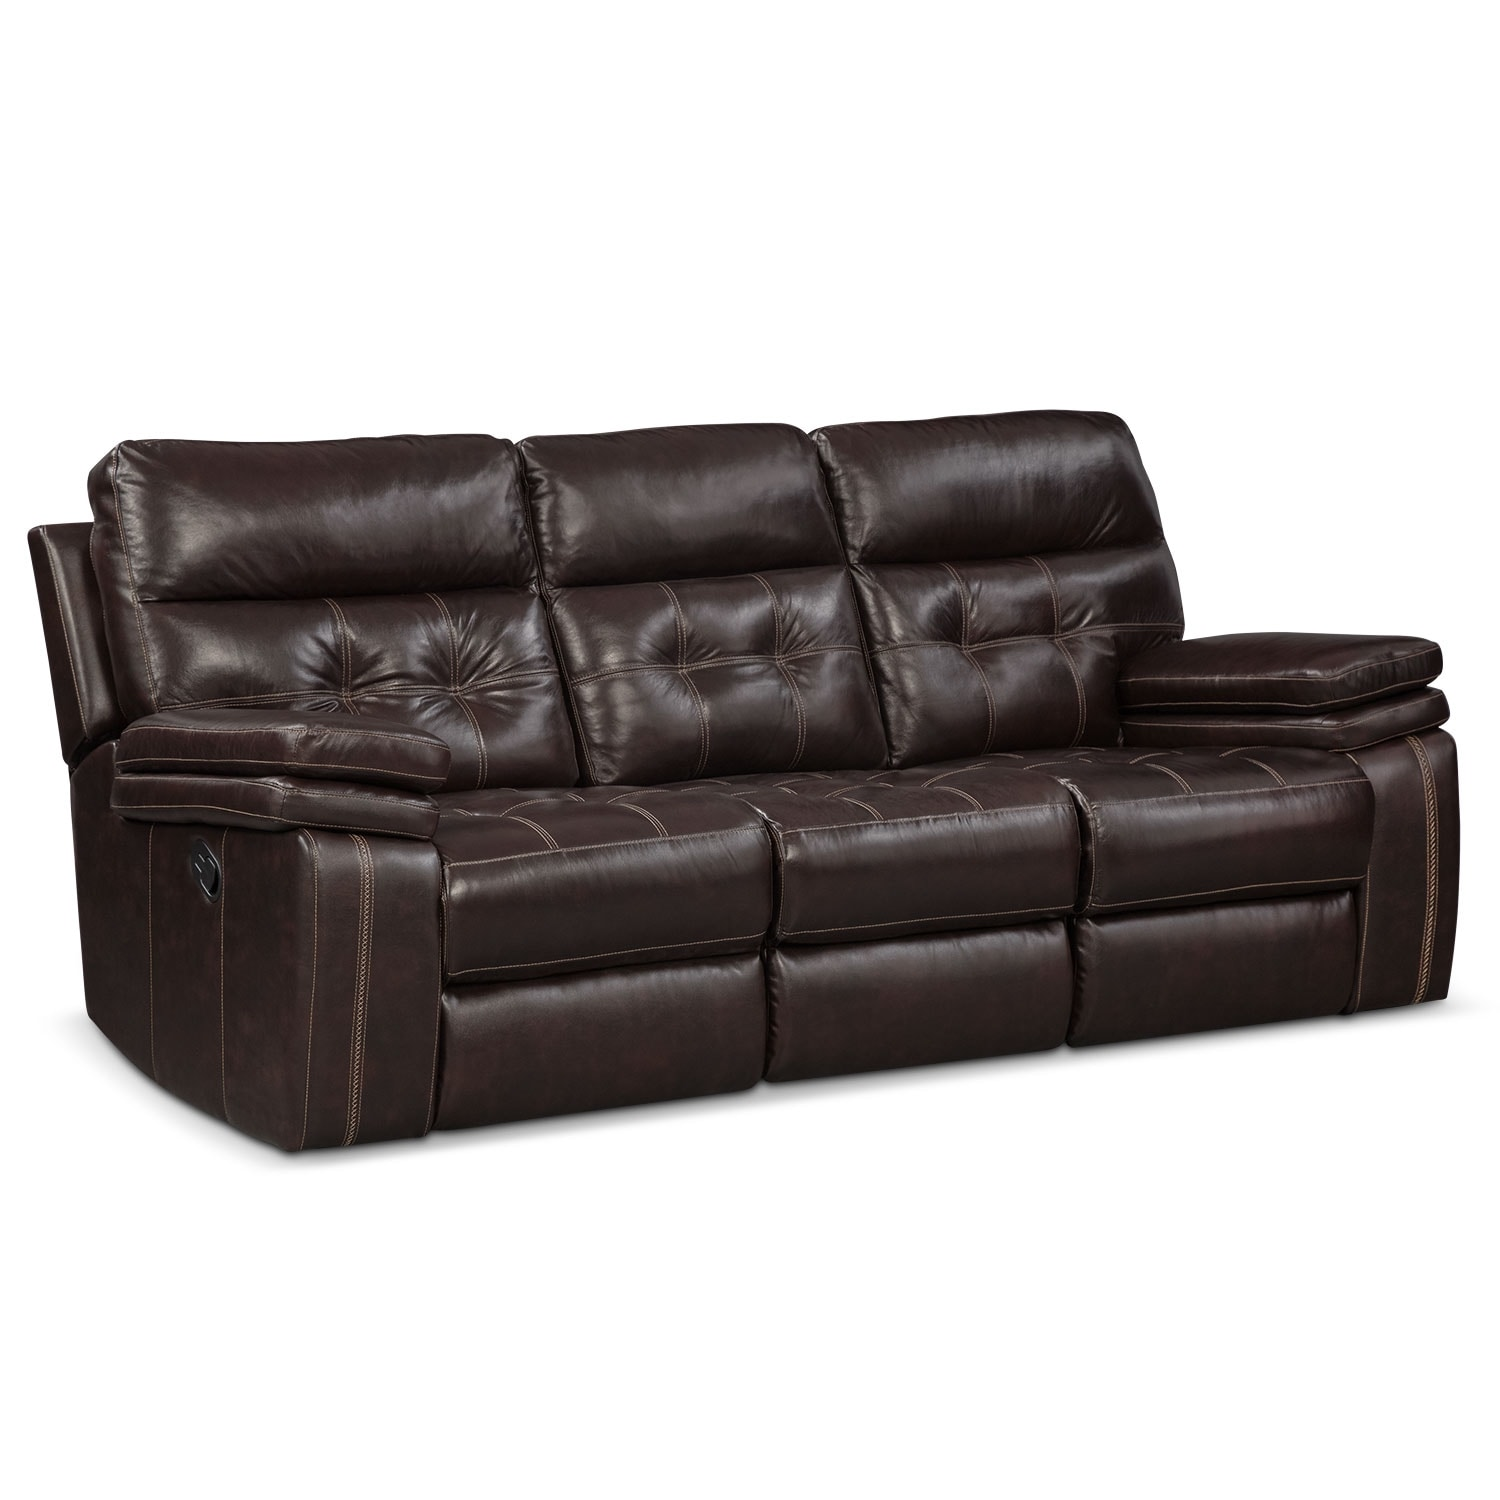 Brisco manual reclining loveseat brown value city furniture Chocolate loveseat